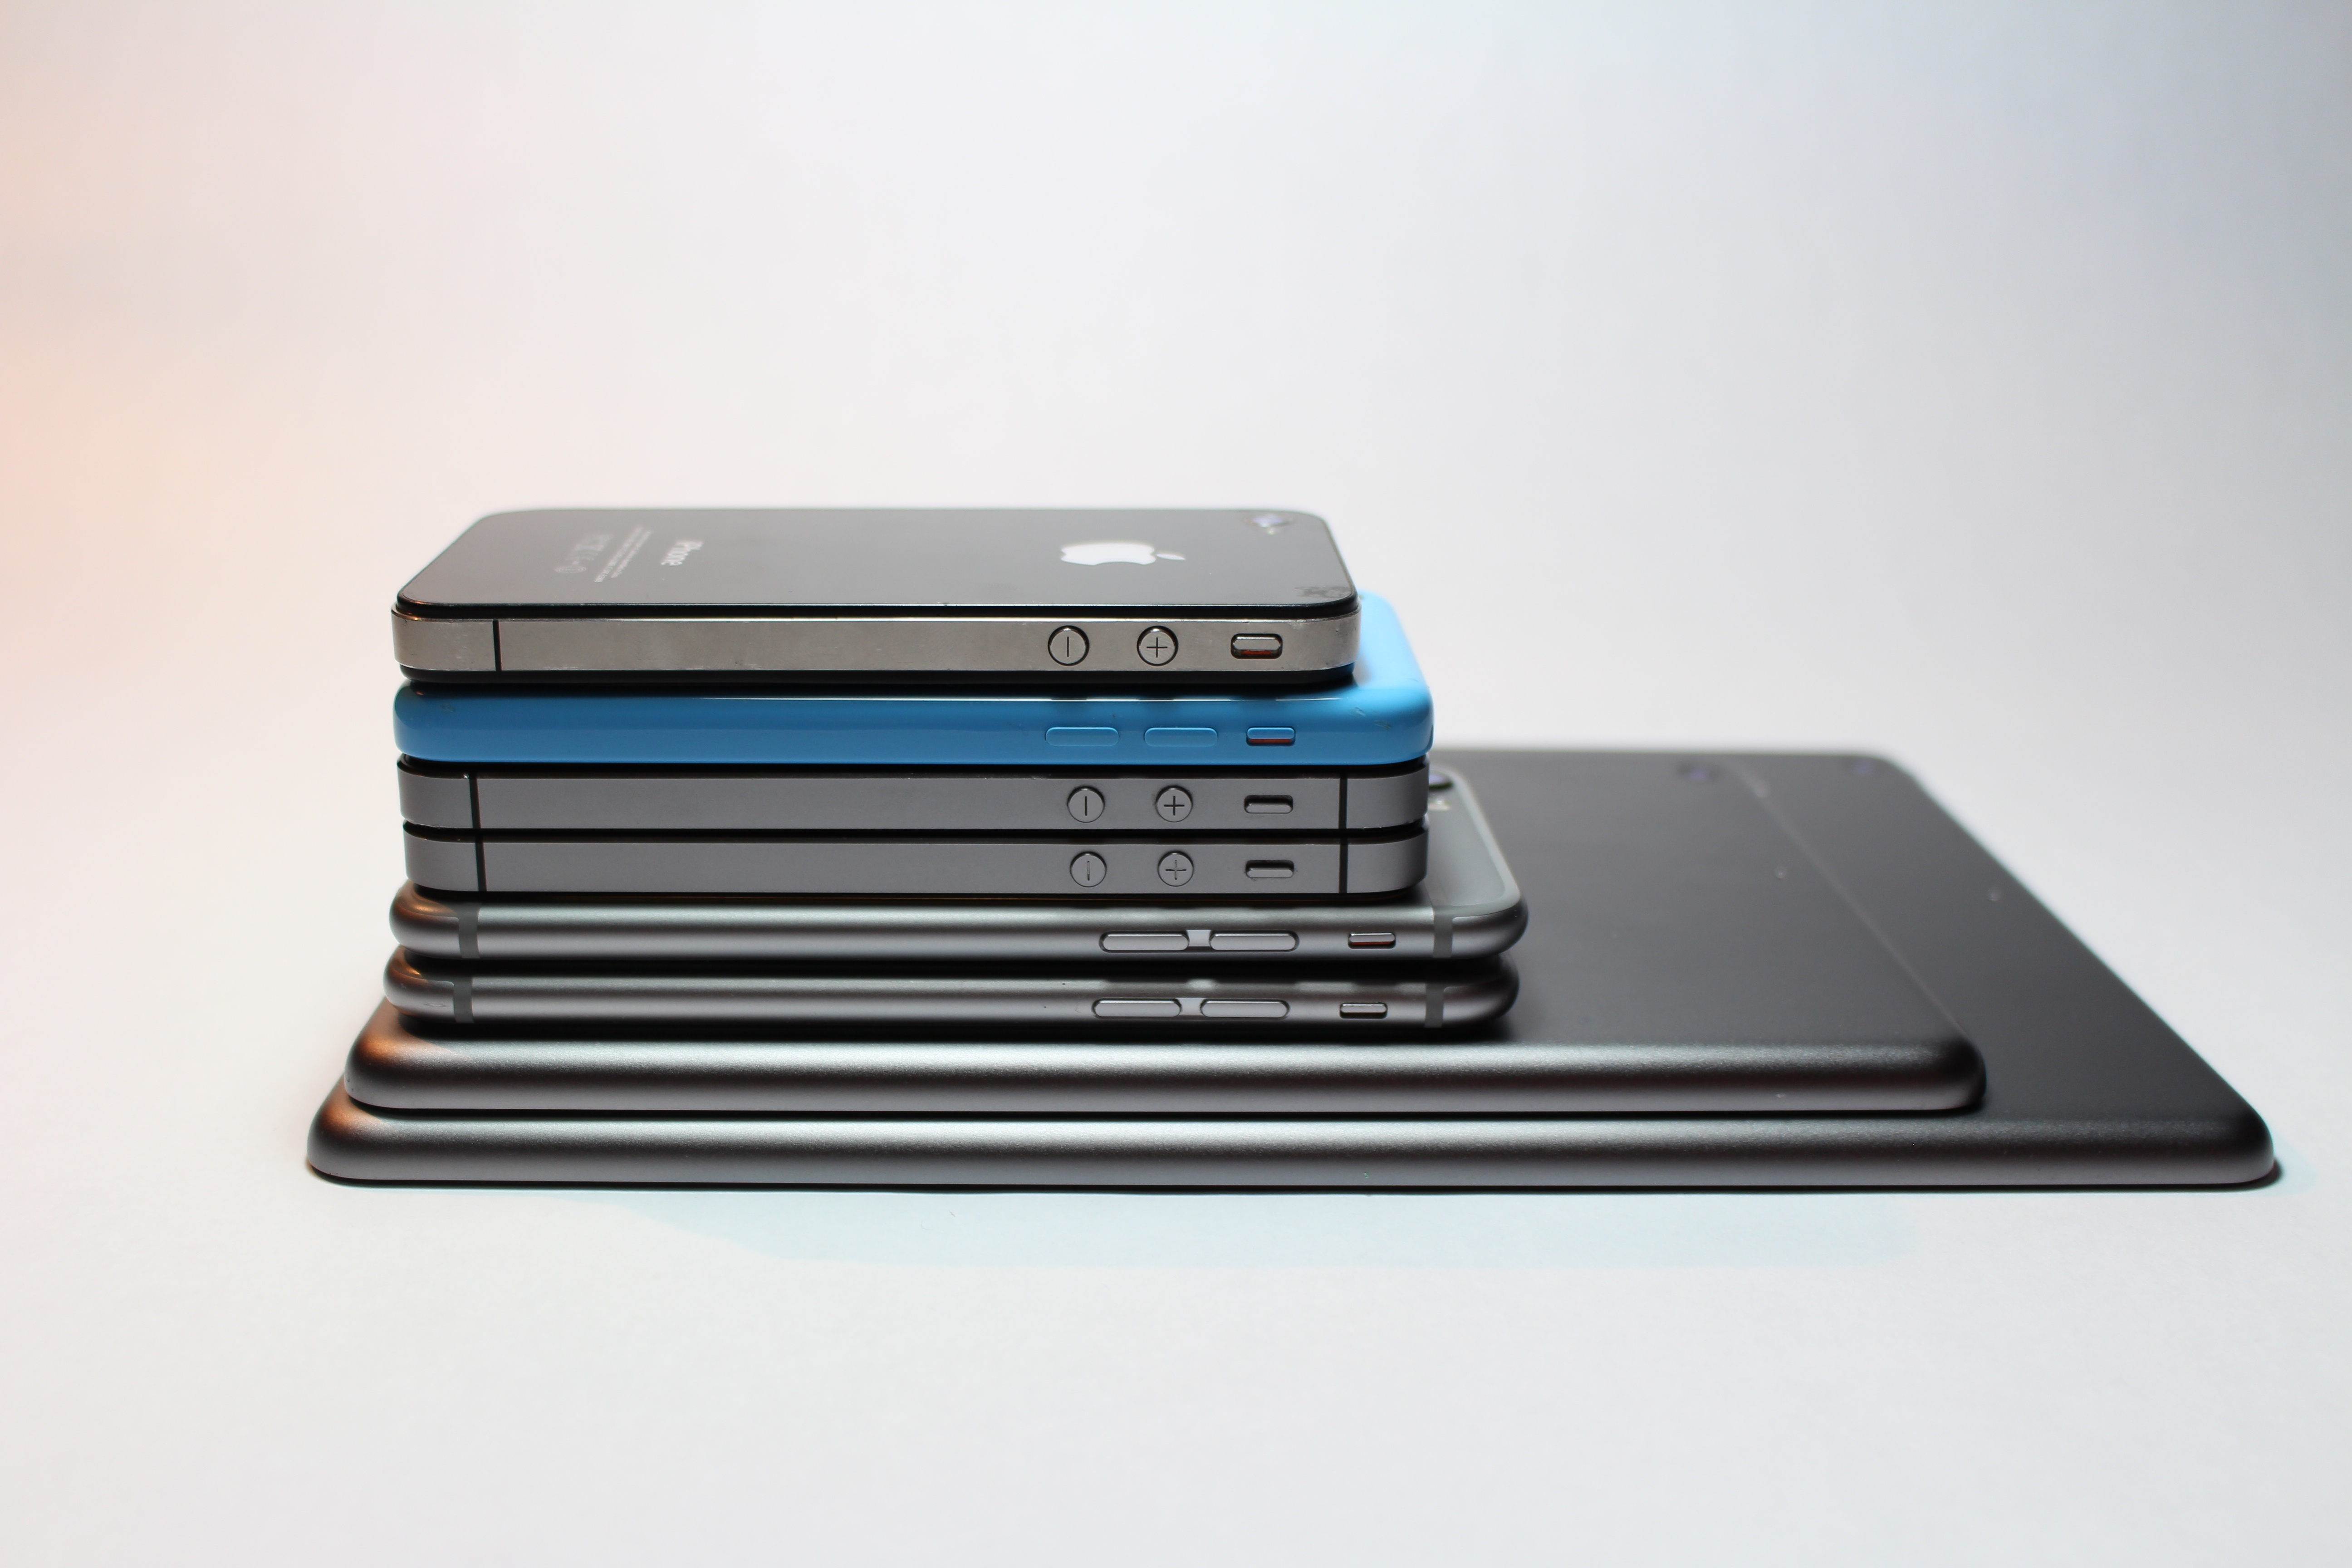 Various Smartphones stacked on top of each other